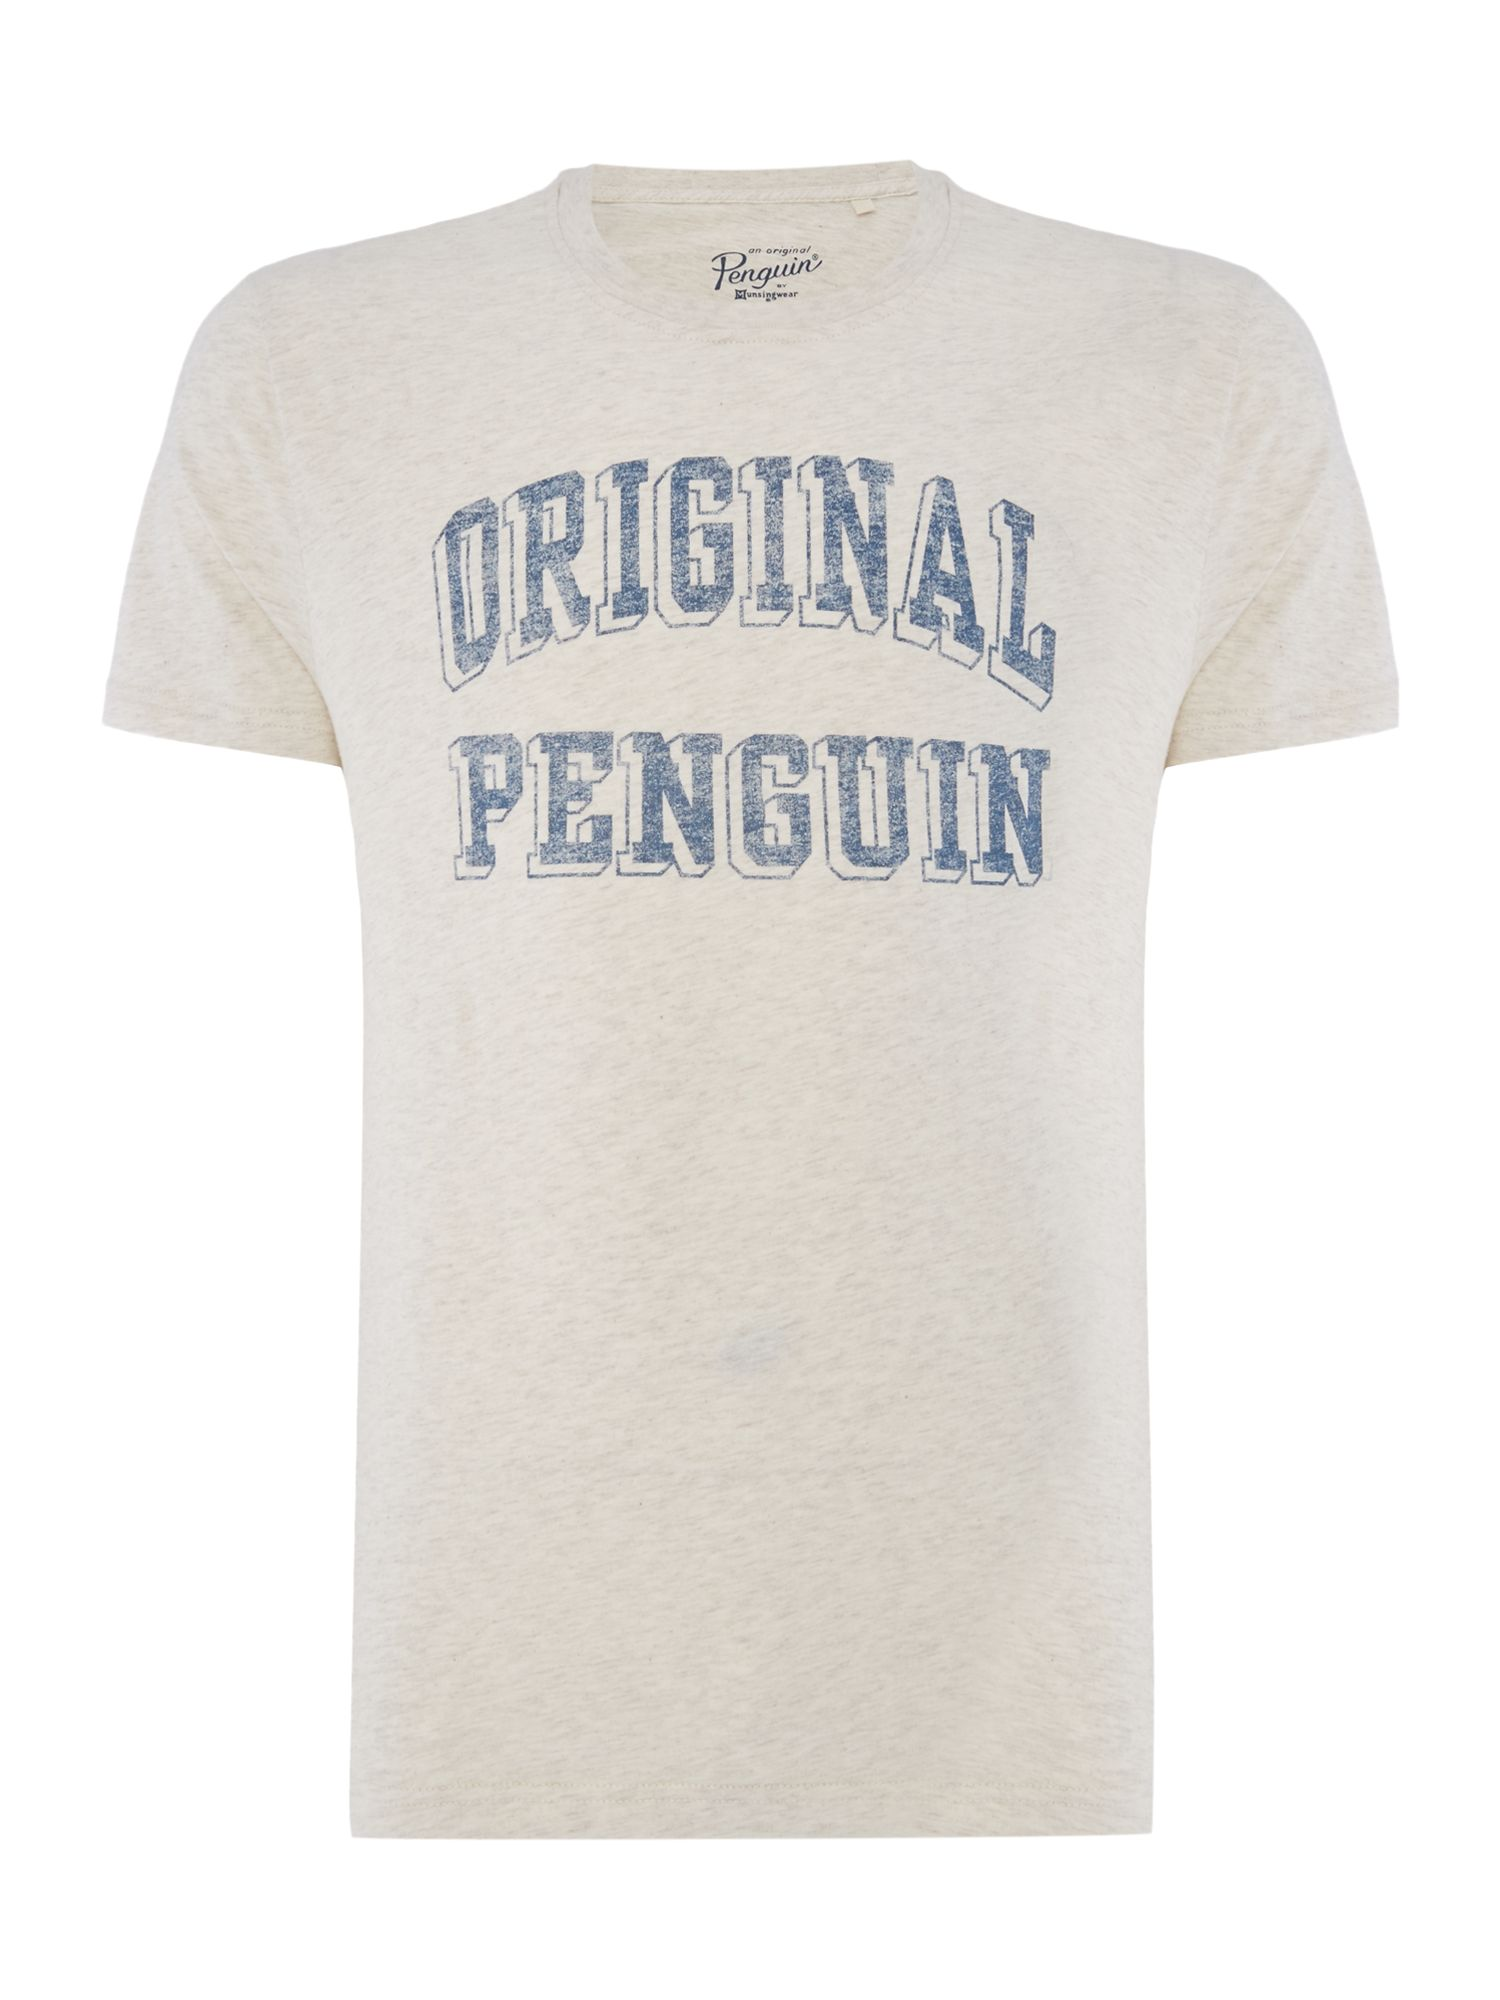 Men's Original Penguin 3-D Graphic-Block T-shirt, Light Grey Marl